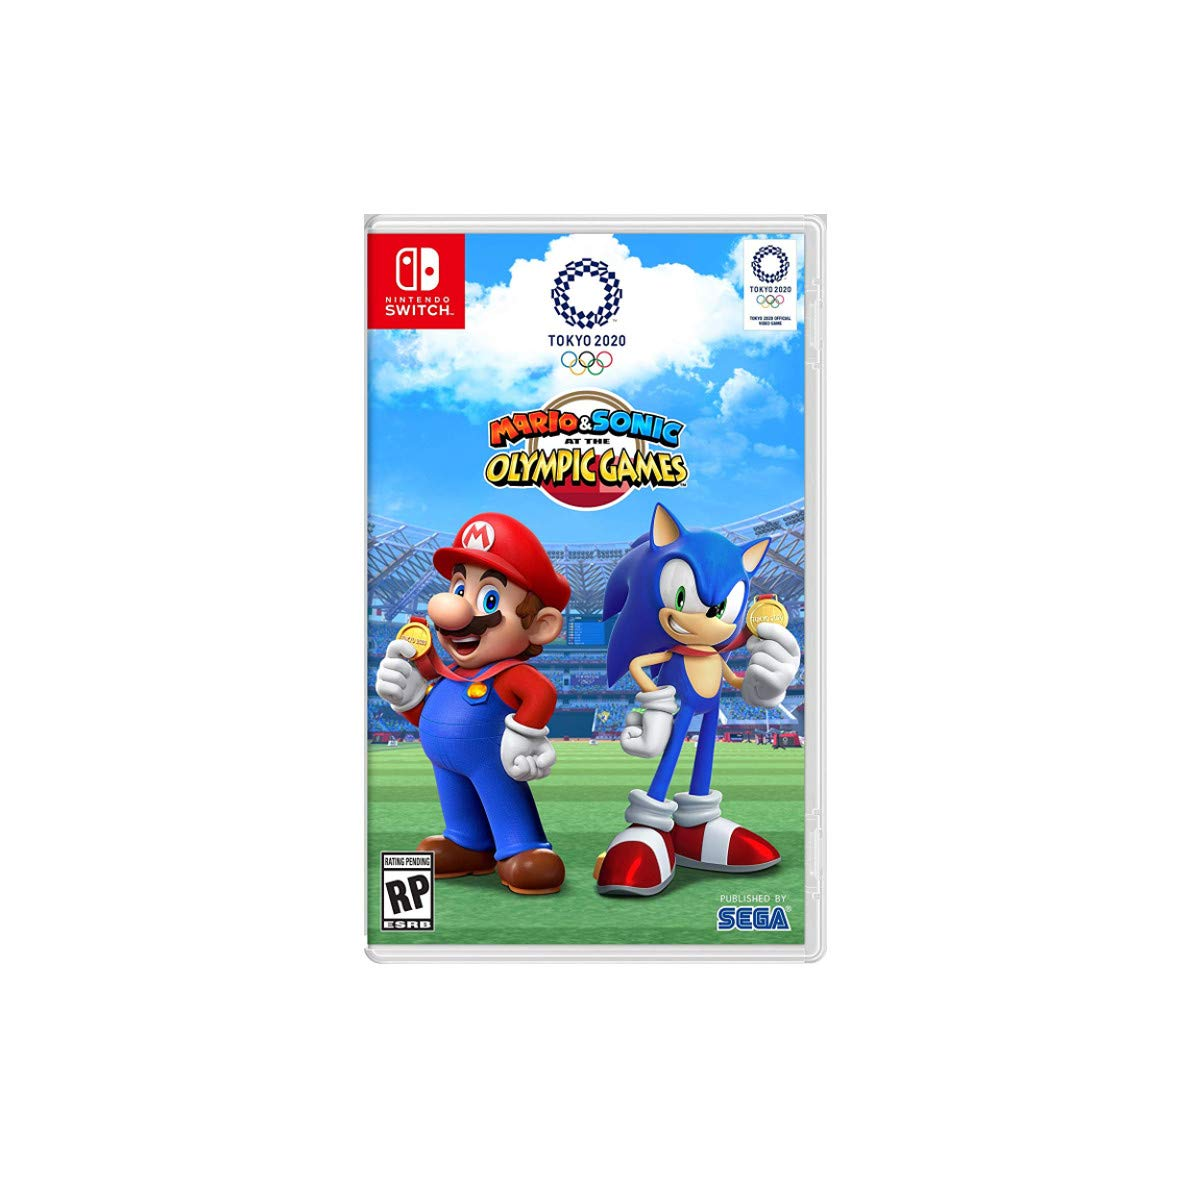 PlaceholderMario & Sonic at the Olympic Games: Tokyo 2020